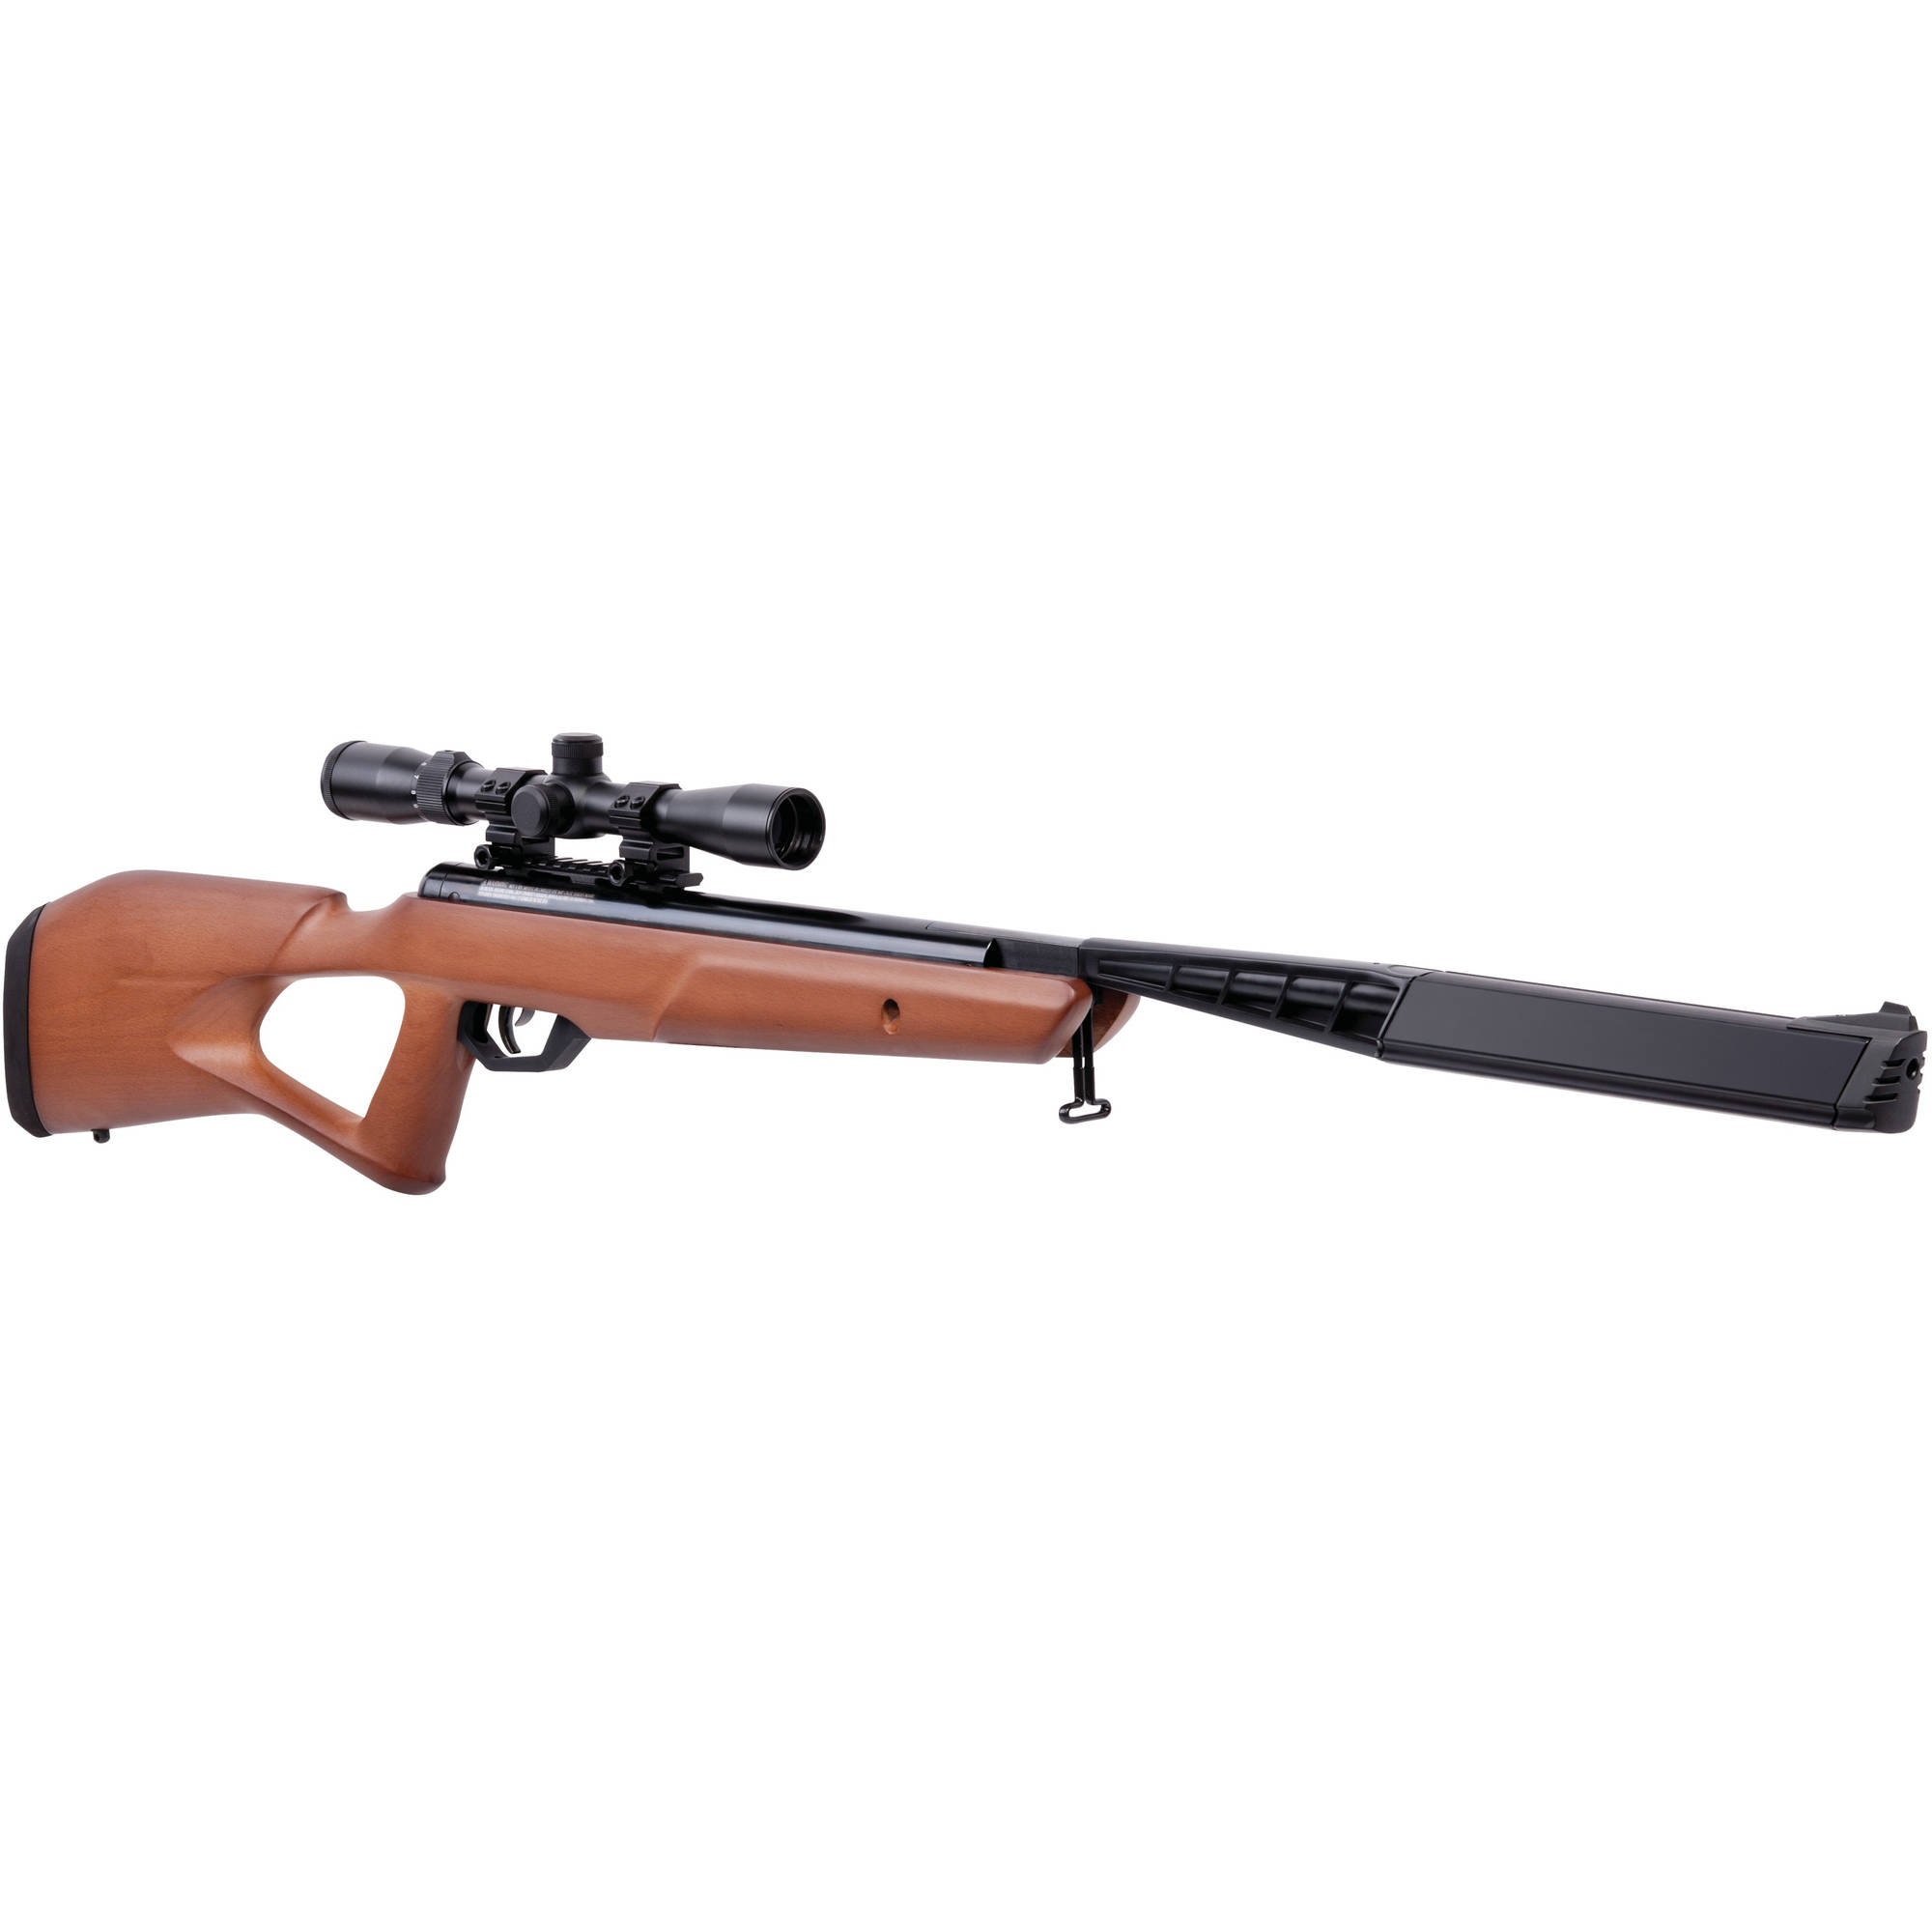 Benjamin Trail SBD Stealth Hardwood .177 Caliber NP2 Break Barrel Air Rifle with Scope, 1400fps by Crosman